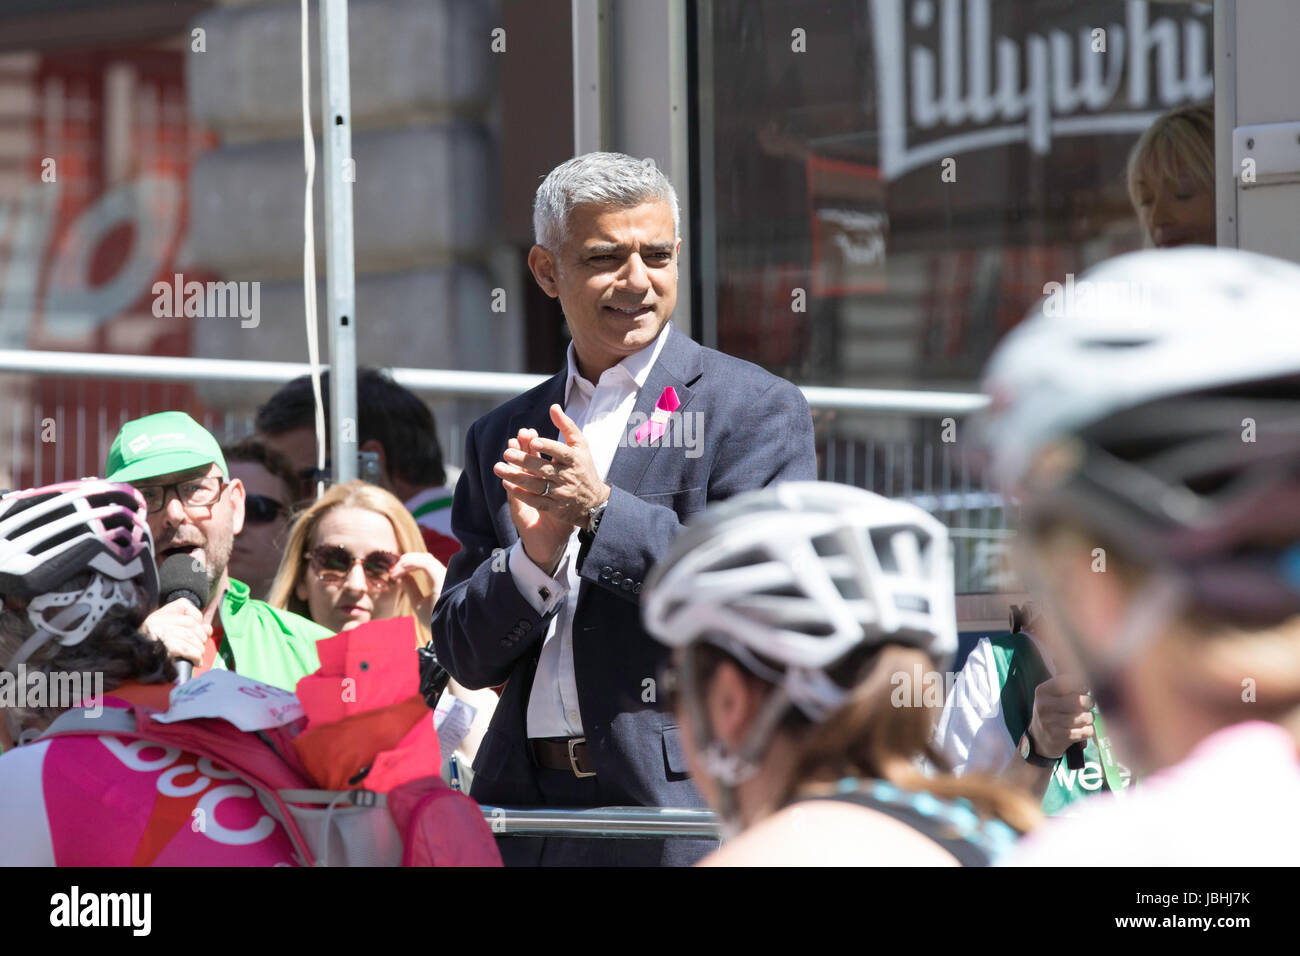 London, UK.  11th June 2017. The Pink Ribbon charity bike ride ahead of the final stage of the 2017 Women's Tour - Stock Image